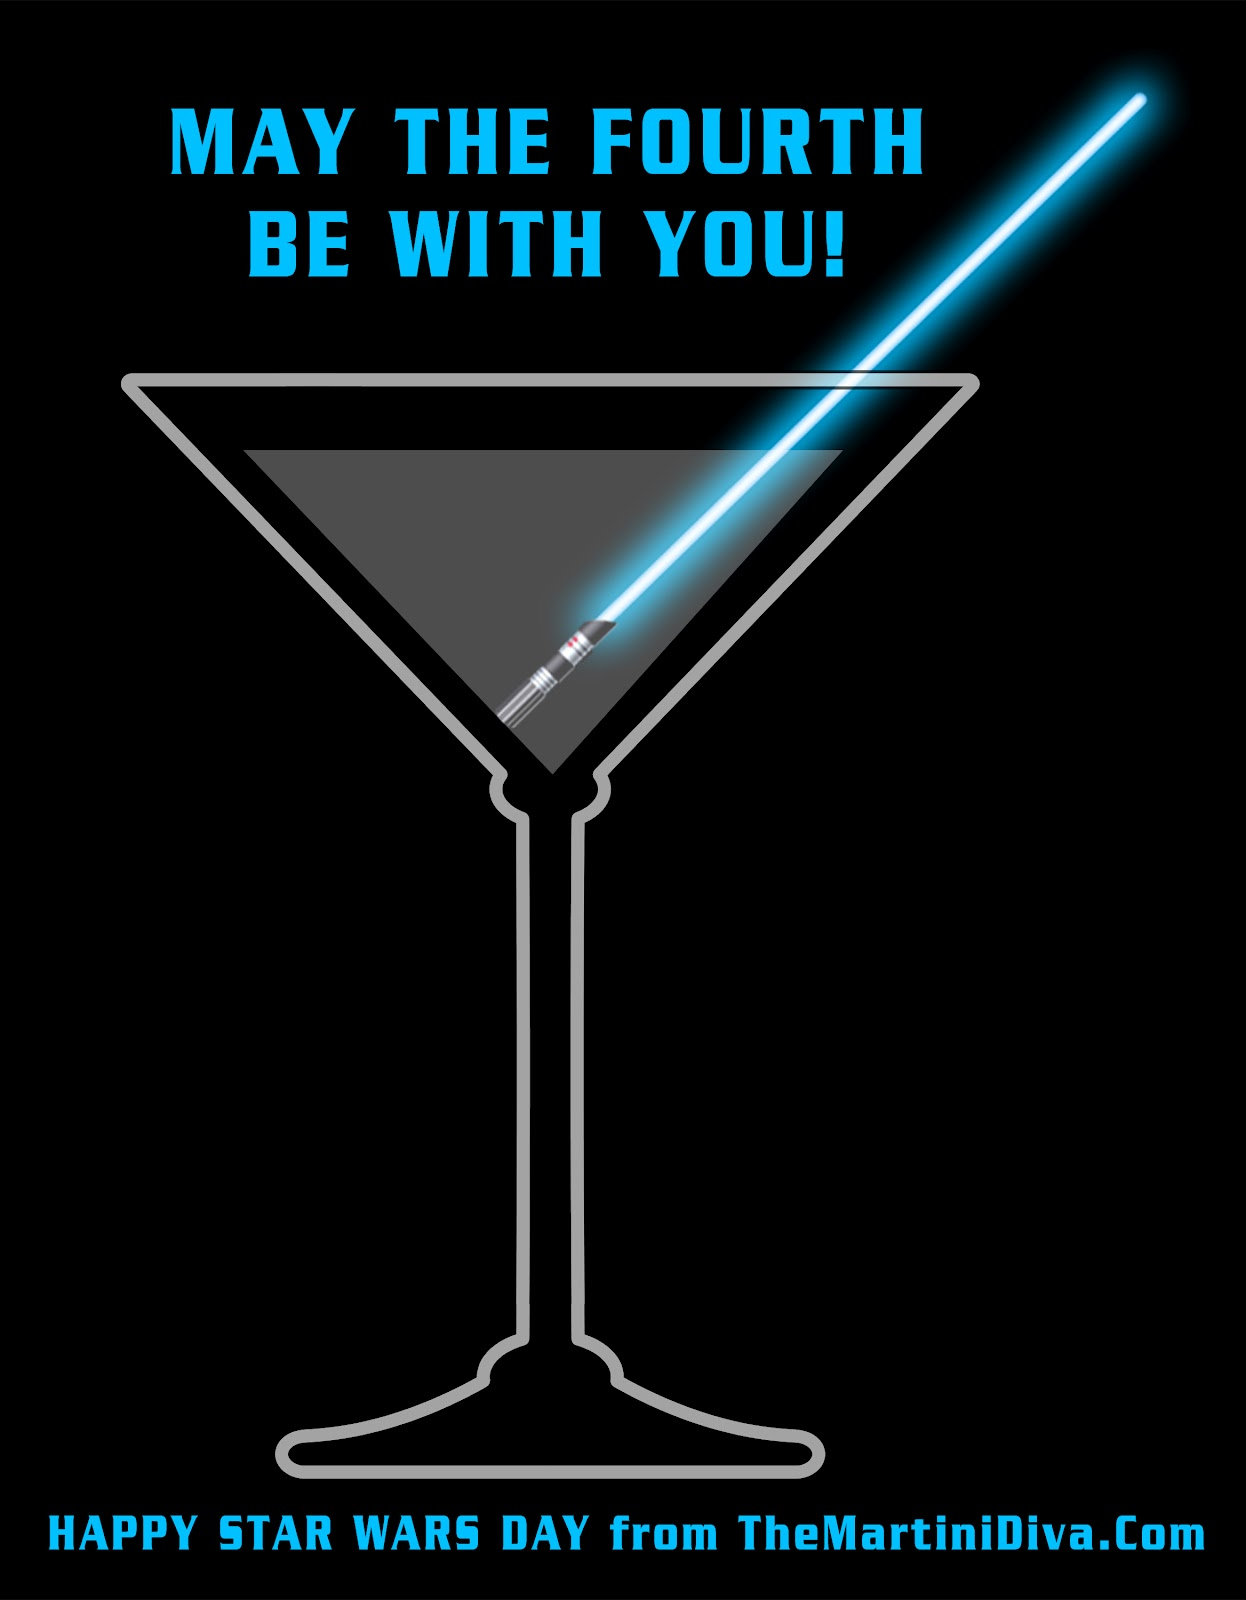 Star Wars Day - May Fourth Be With You Graphic